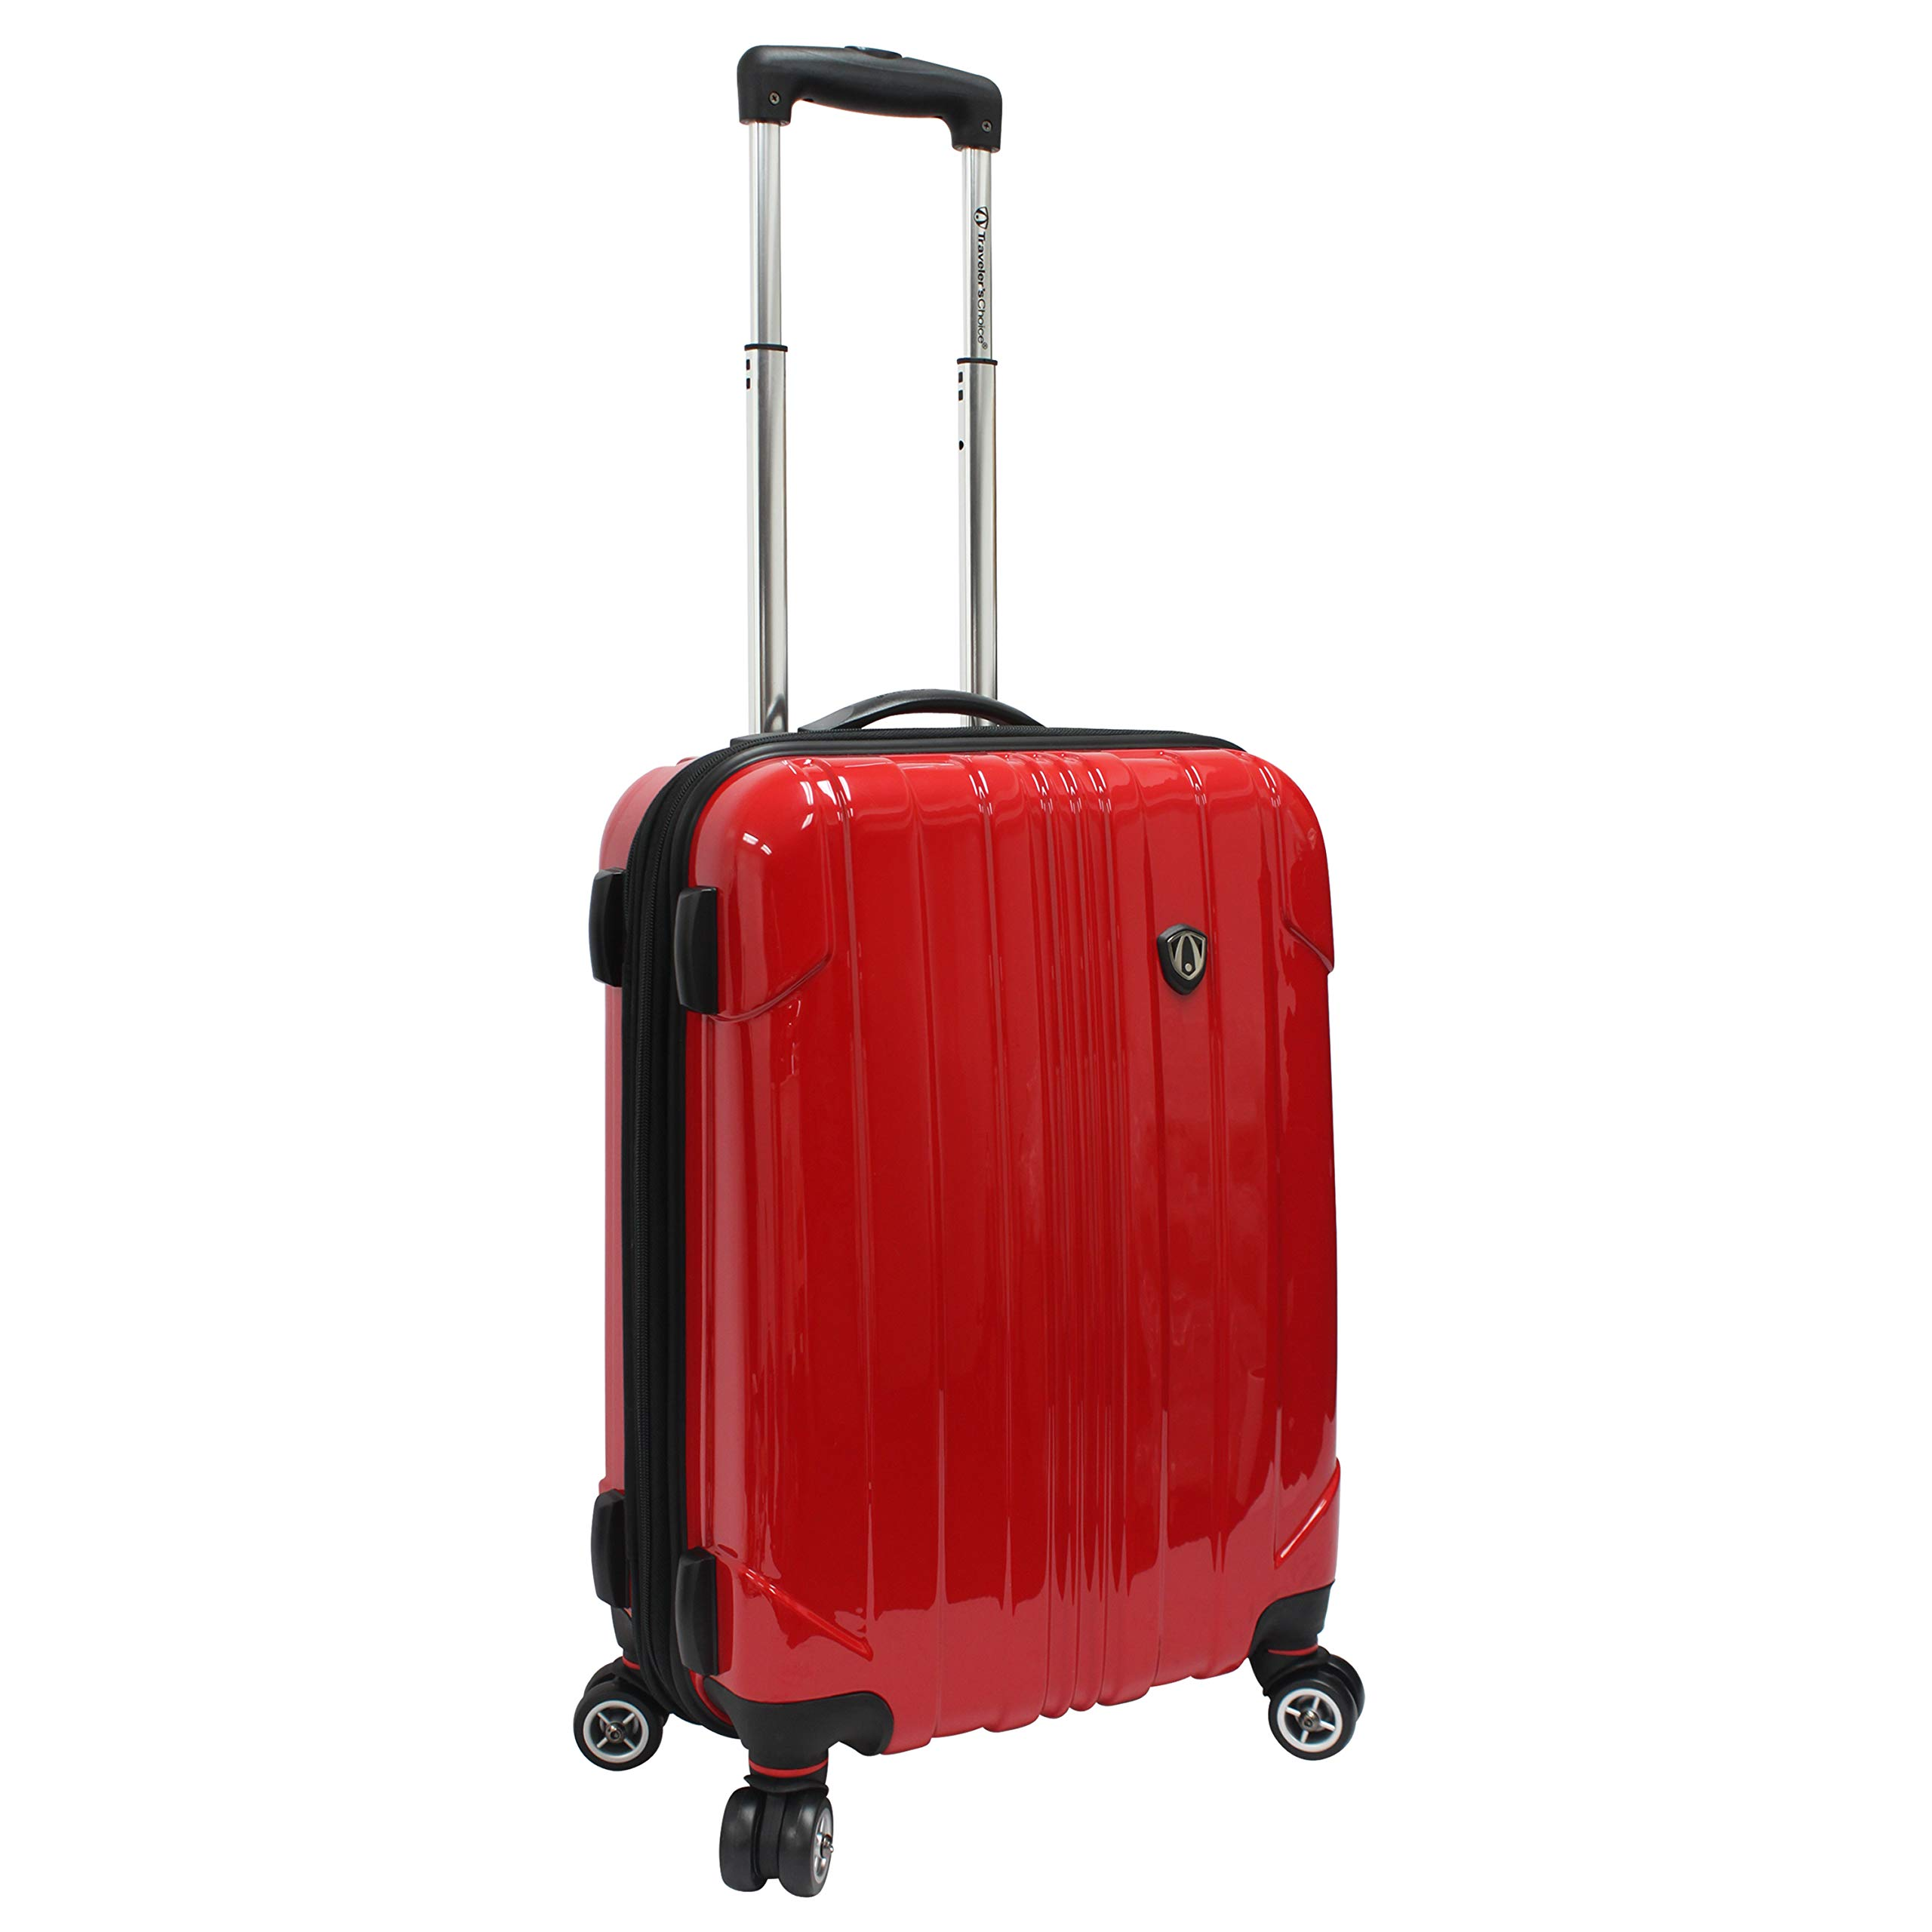 Traveler's Choice Sedona 100% Pure Polycarbonate Expandable Spinner Luggage, Red